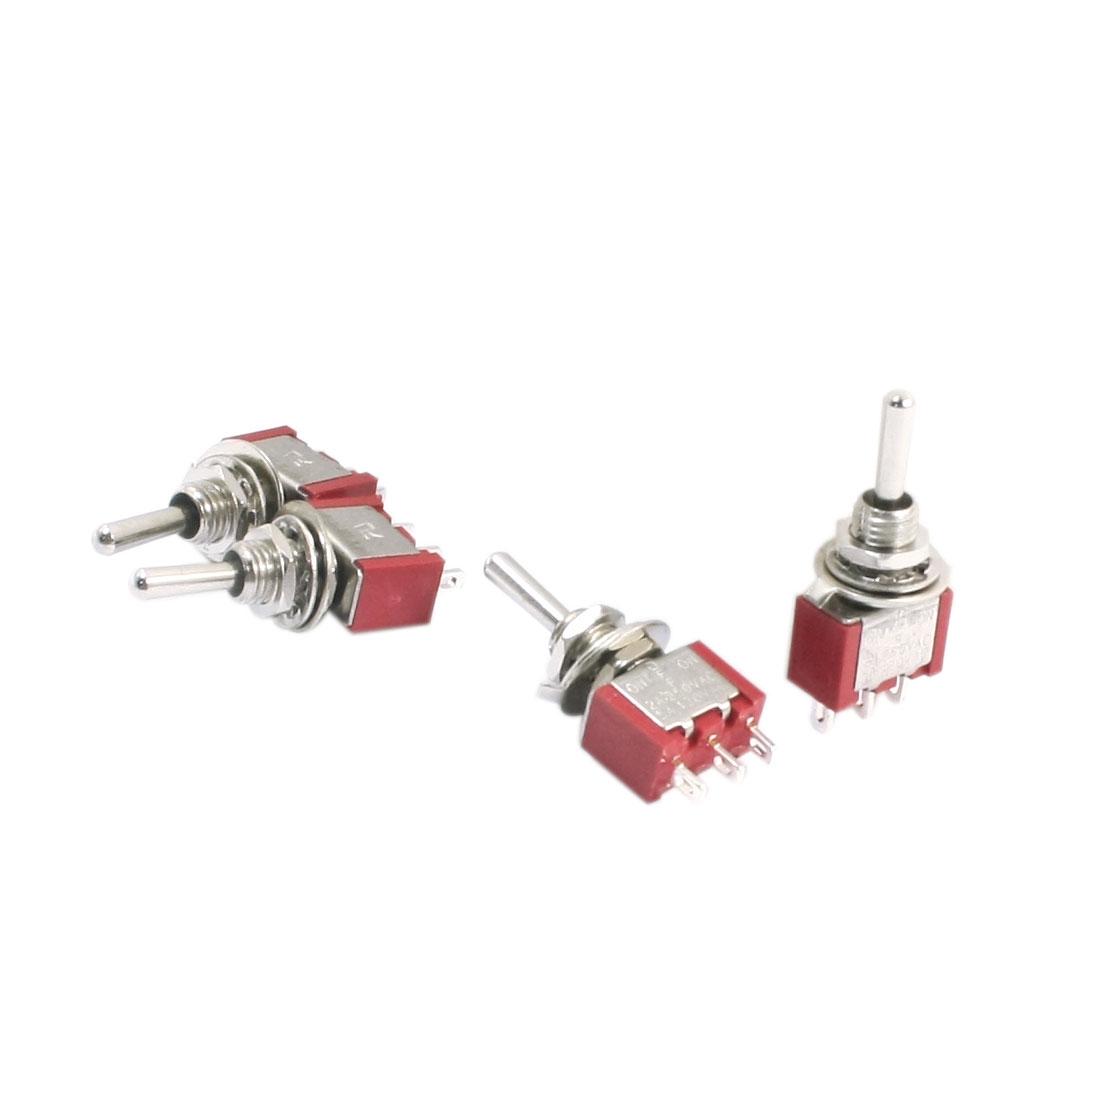 SPDT ON-OFF-ON 3 Position Momentary Electric Toggle Switch AC 120V 5A Red 4pcs